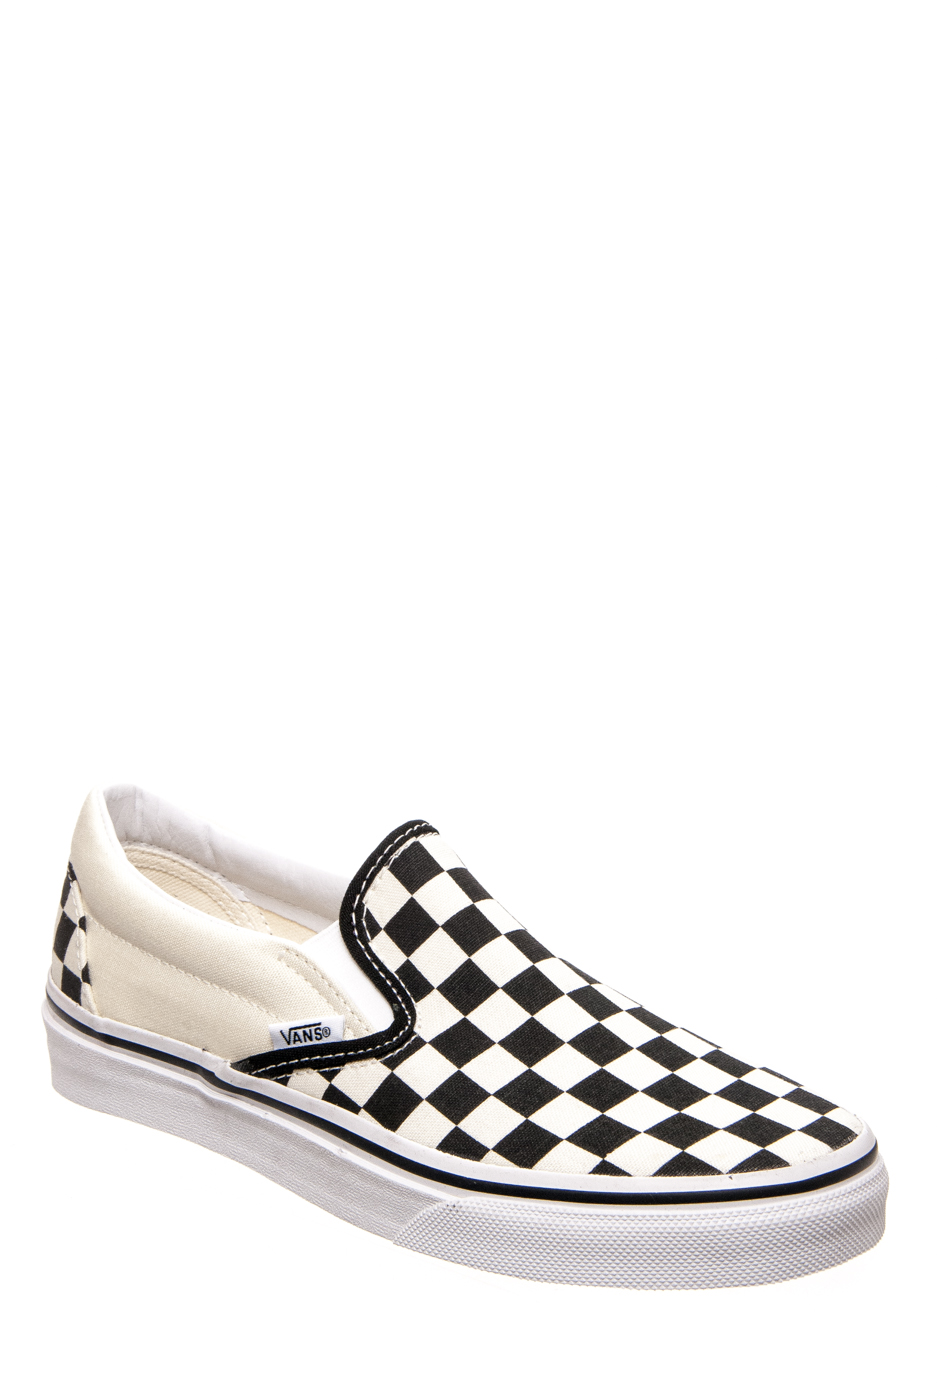 Vans Unisex Classic Slip-On Checkerboard Sneakers - Black / White / Checkerboard